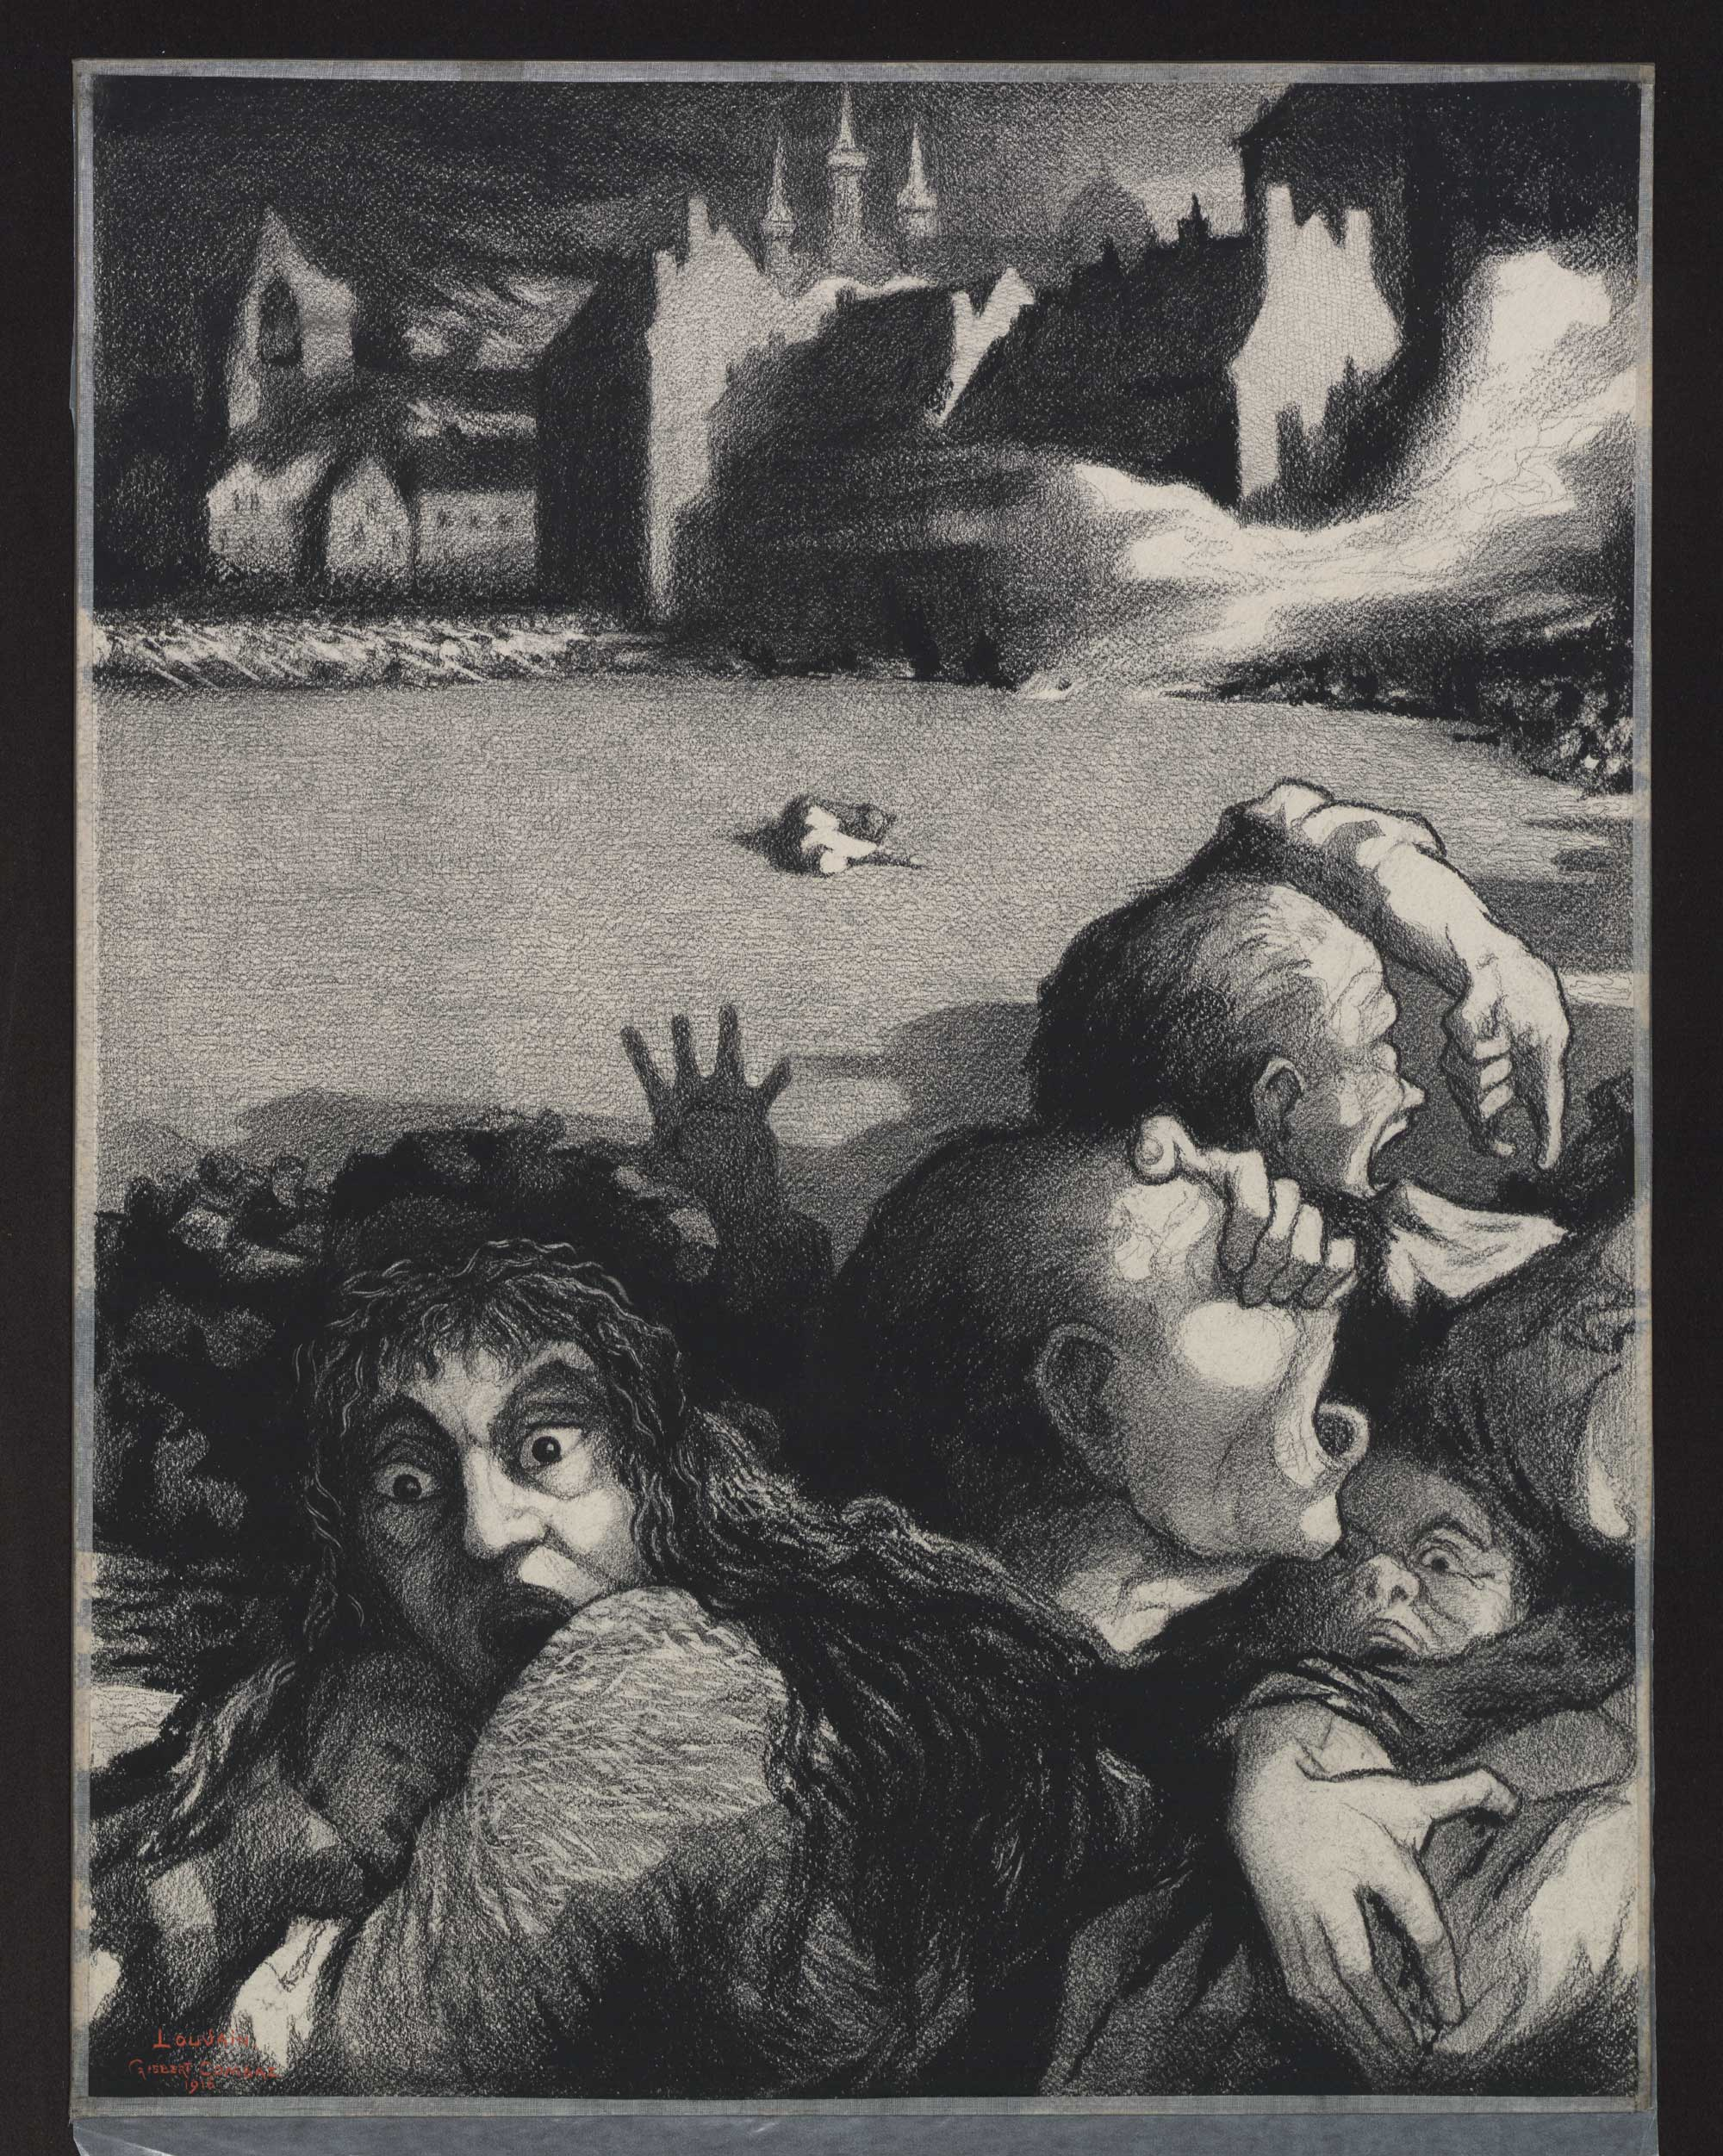 The 'German Atrocities' of 1914 - The British Library